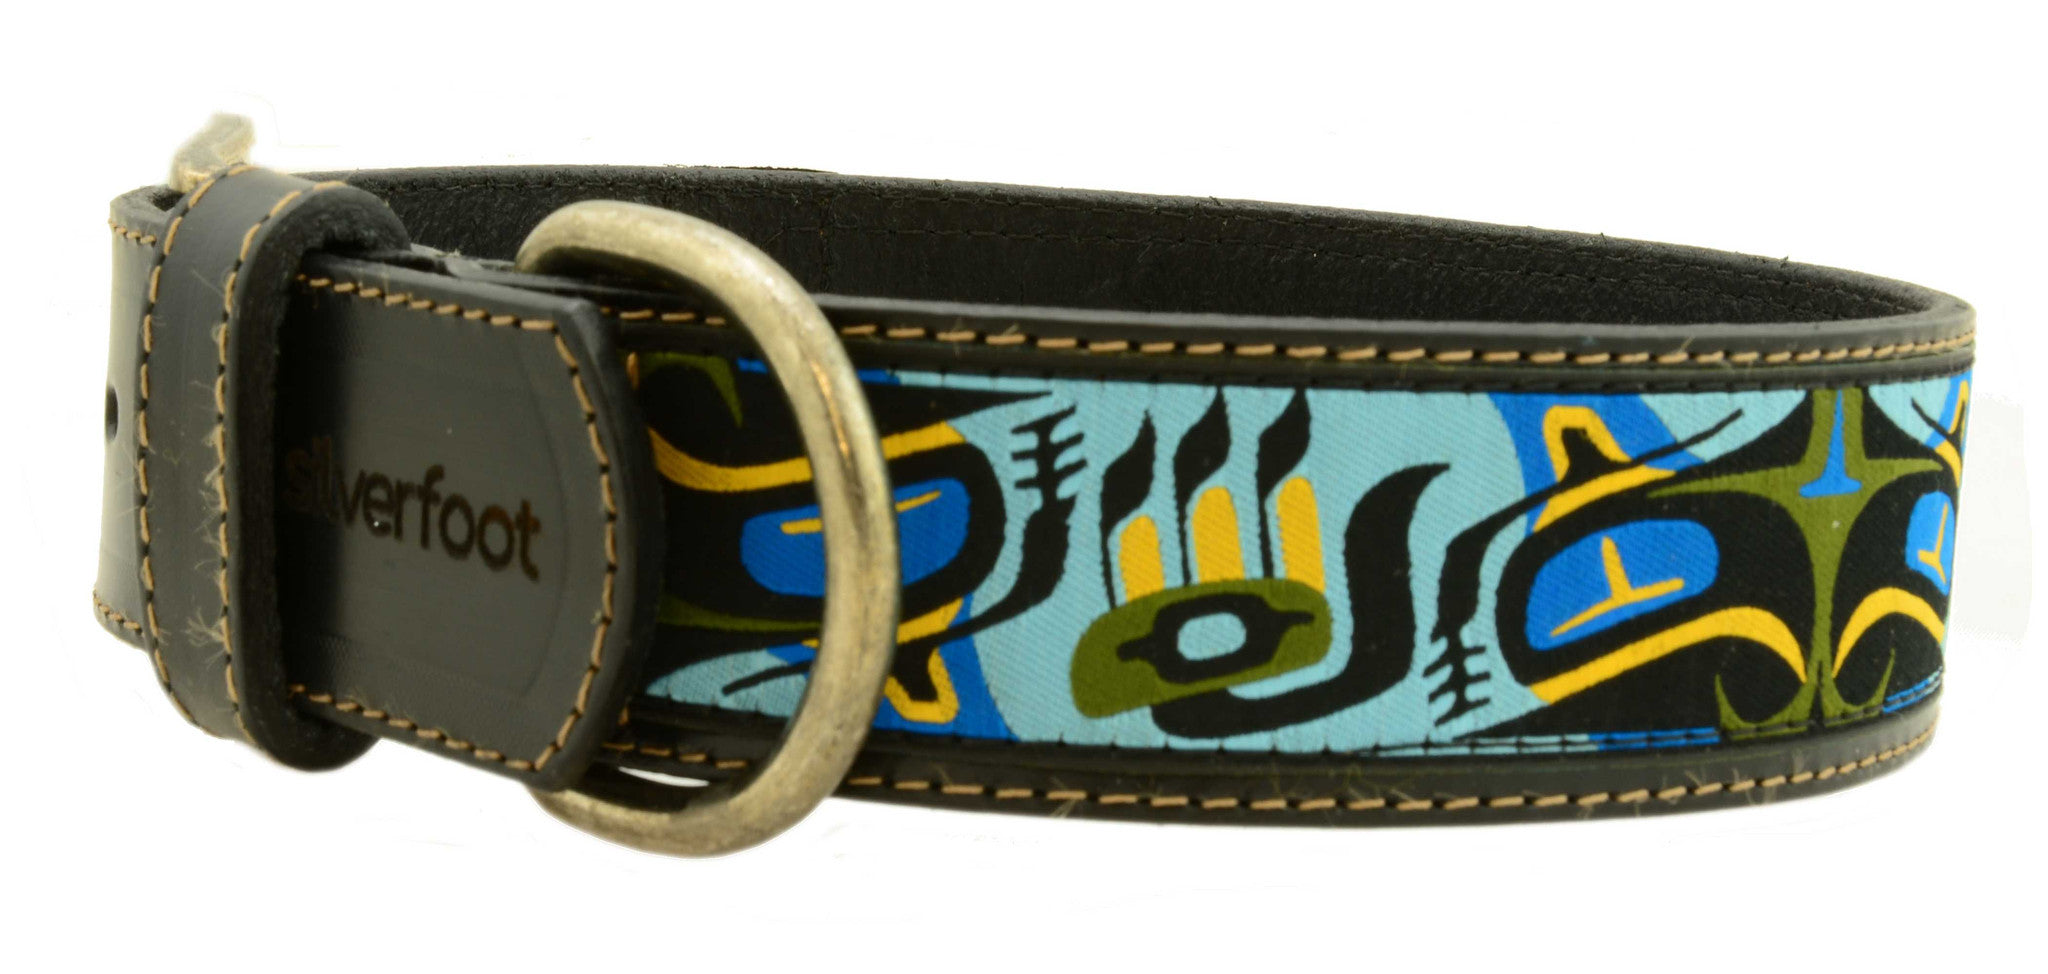 "black leather collar, brown leather collars, black leather, brown leather, 100% cow hide, full hide, high quality leather, 1 1/2"" wide, unique patterns, brilliant designs, bright patterns, first nation inspired"